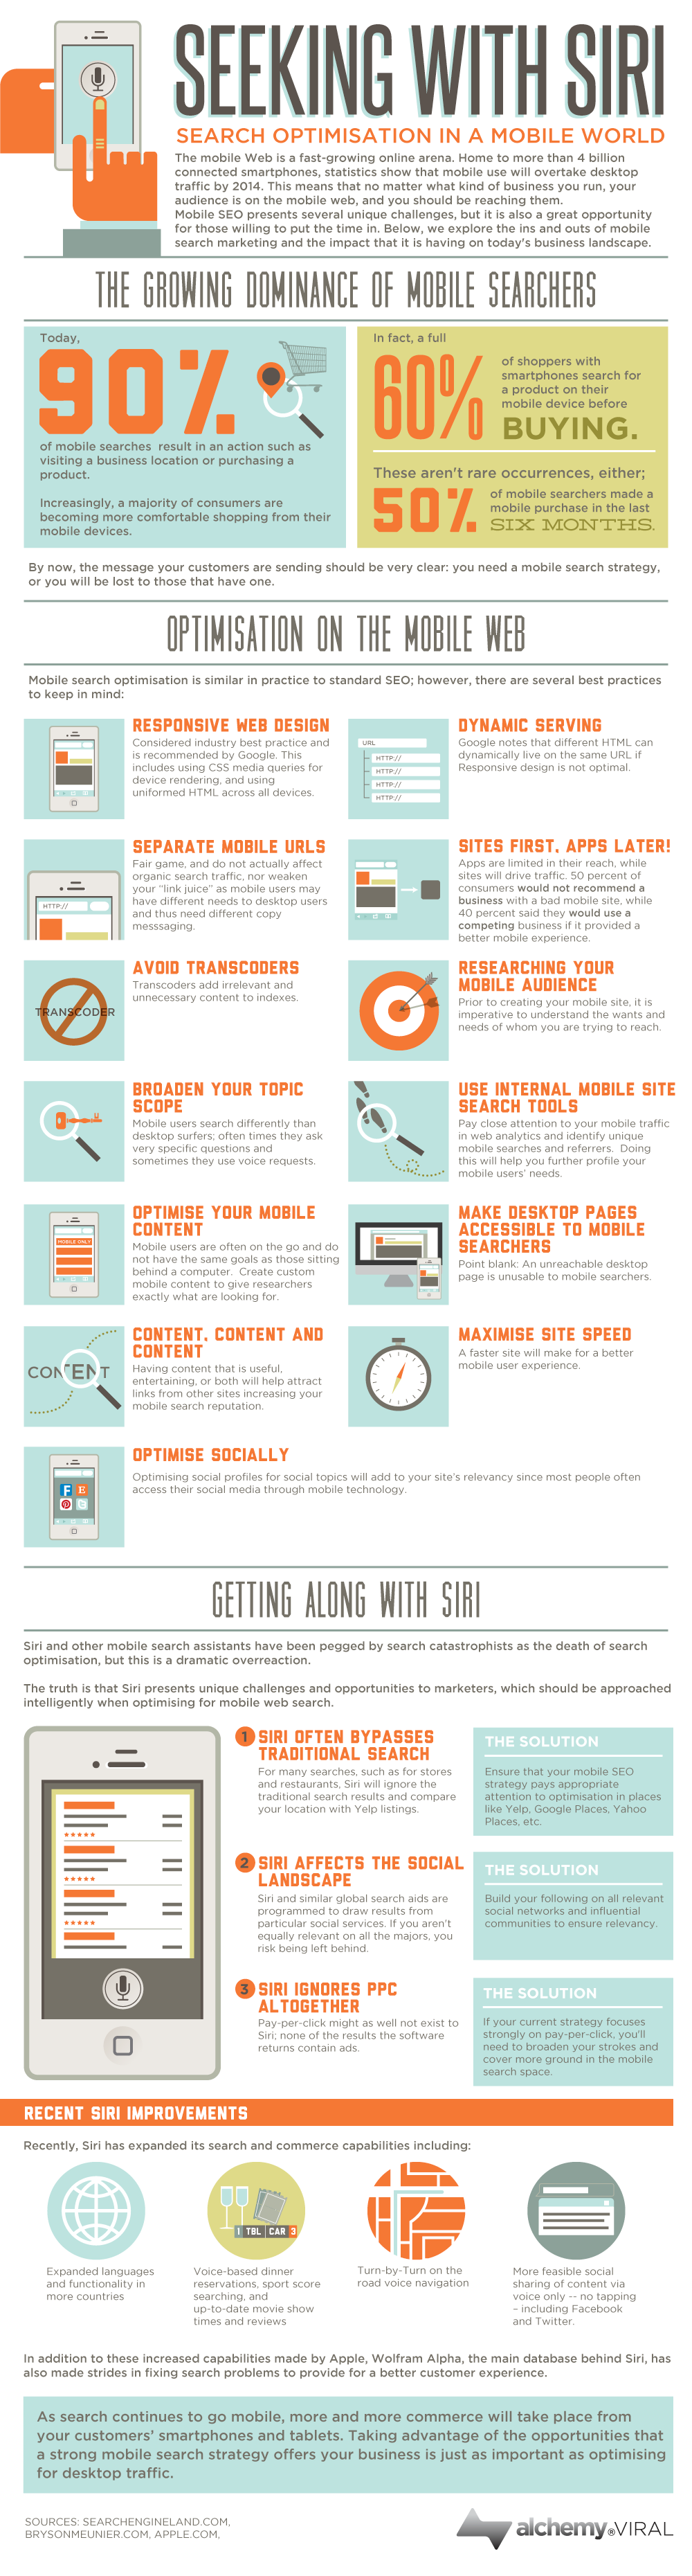 Seo for Mobile Search-Infographic